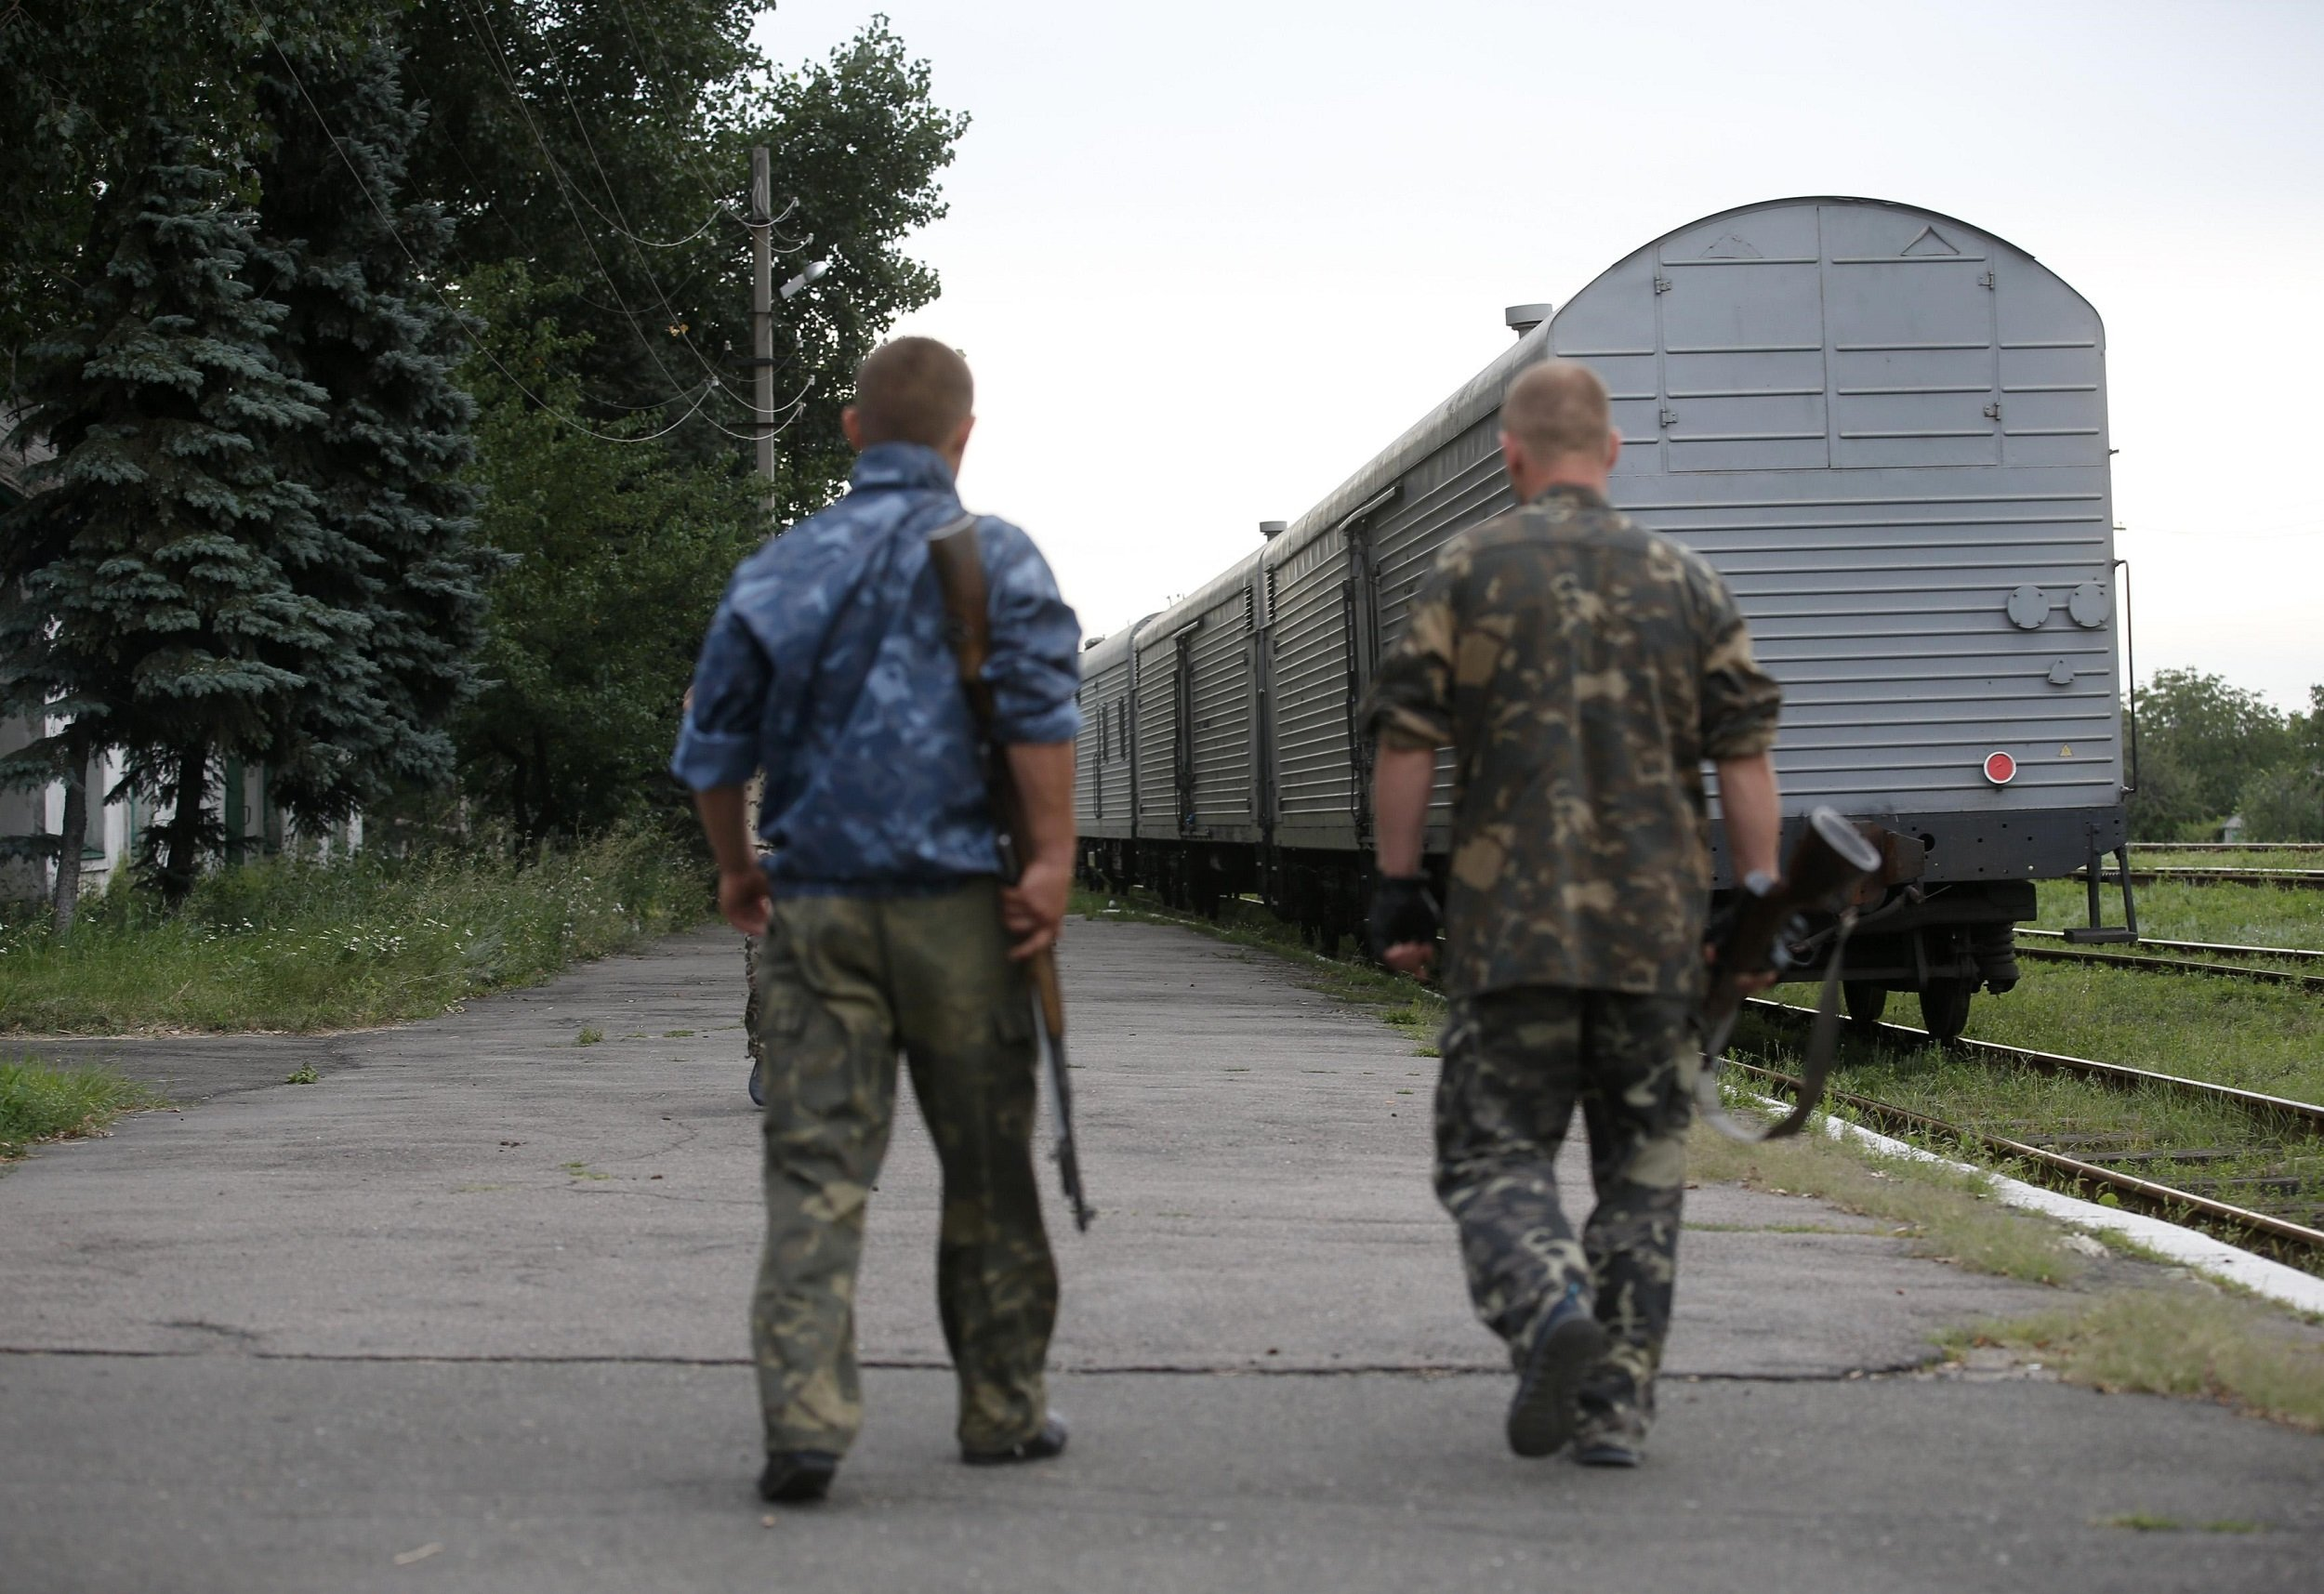 2014-07-21T171847Z_1054845472_GM1EA7M03EB01_RTRMADP_3_UKRAINE-CRISIS-TRAIN